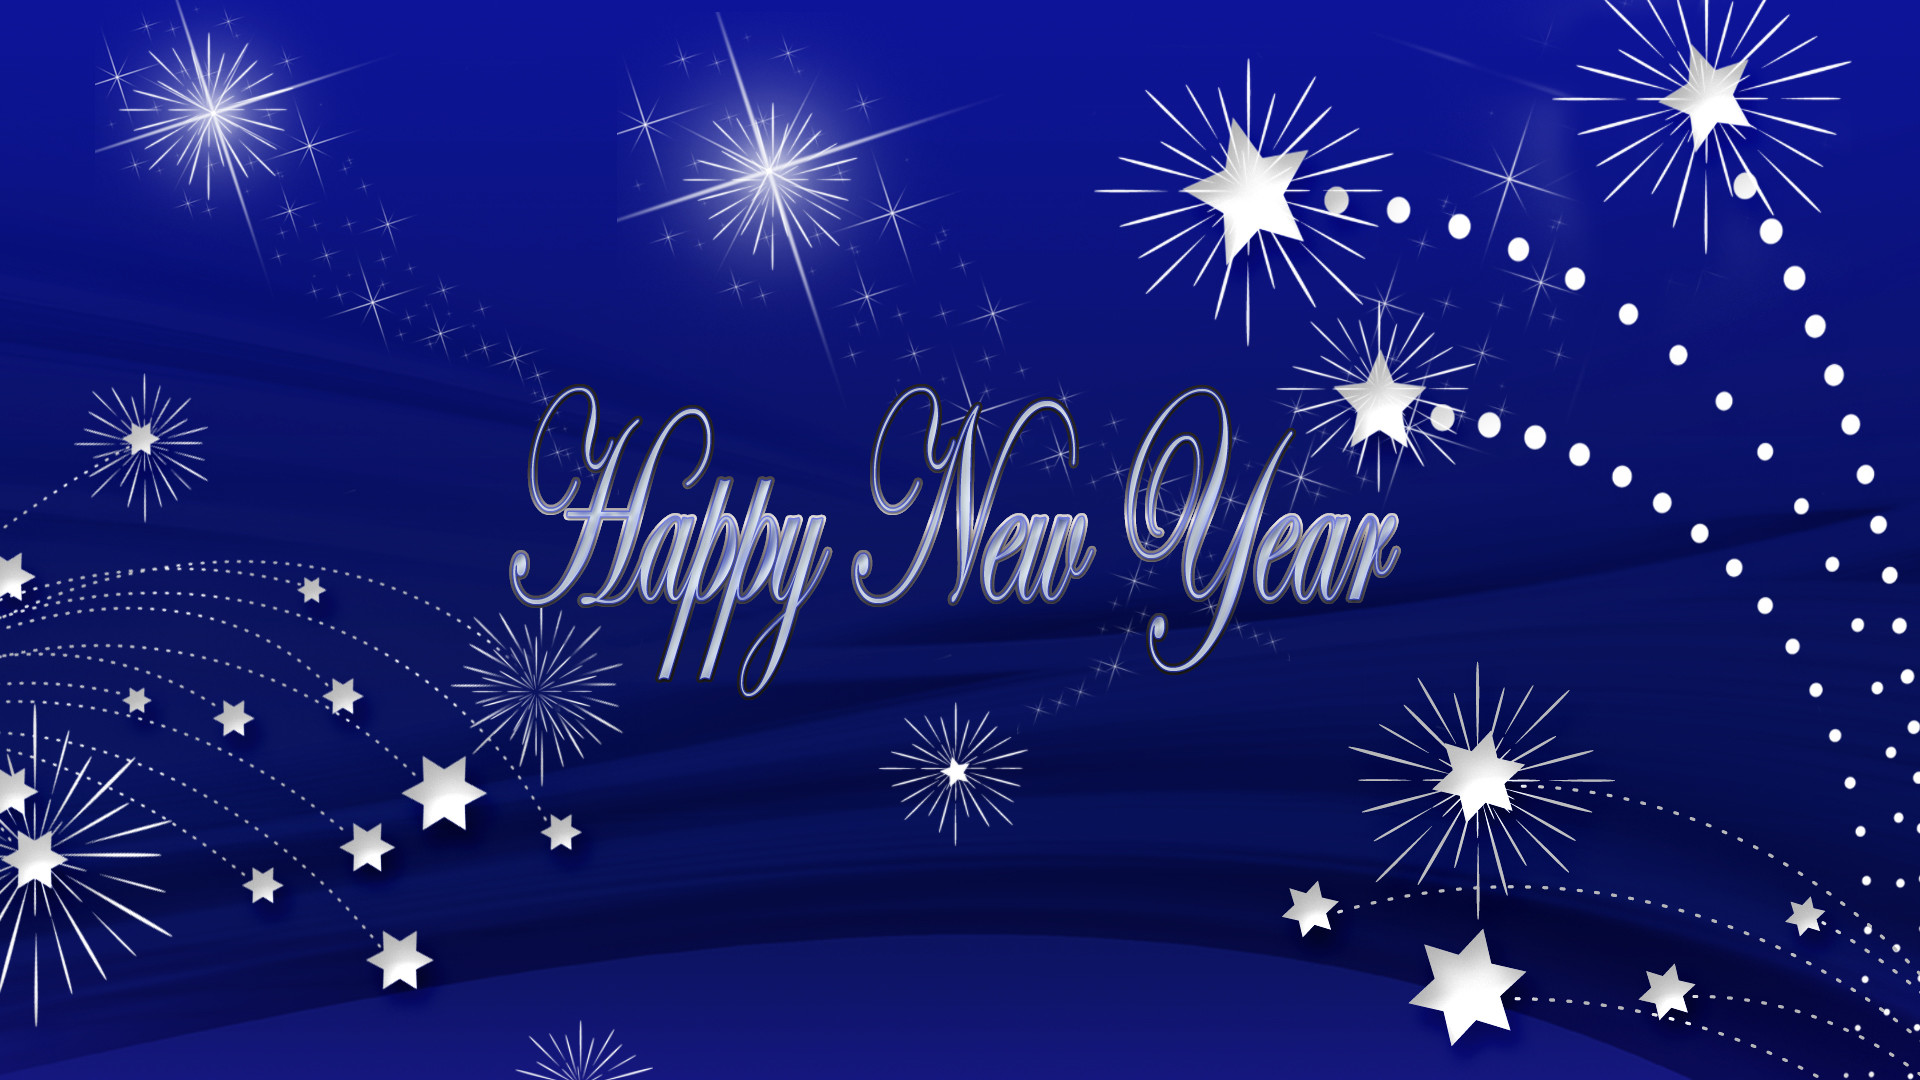 New Year Wallpaper Free Download